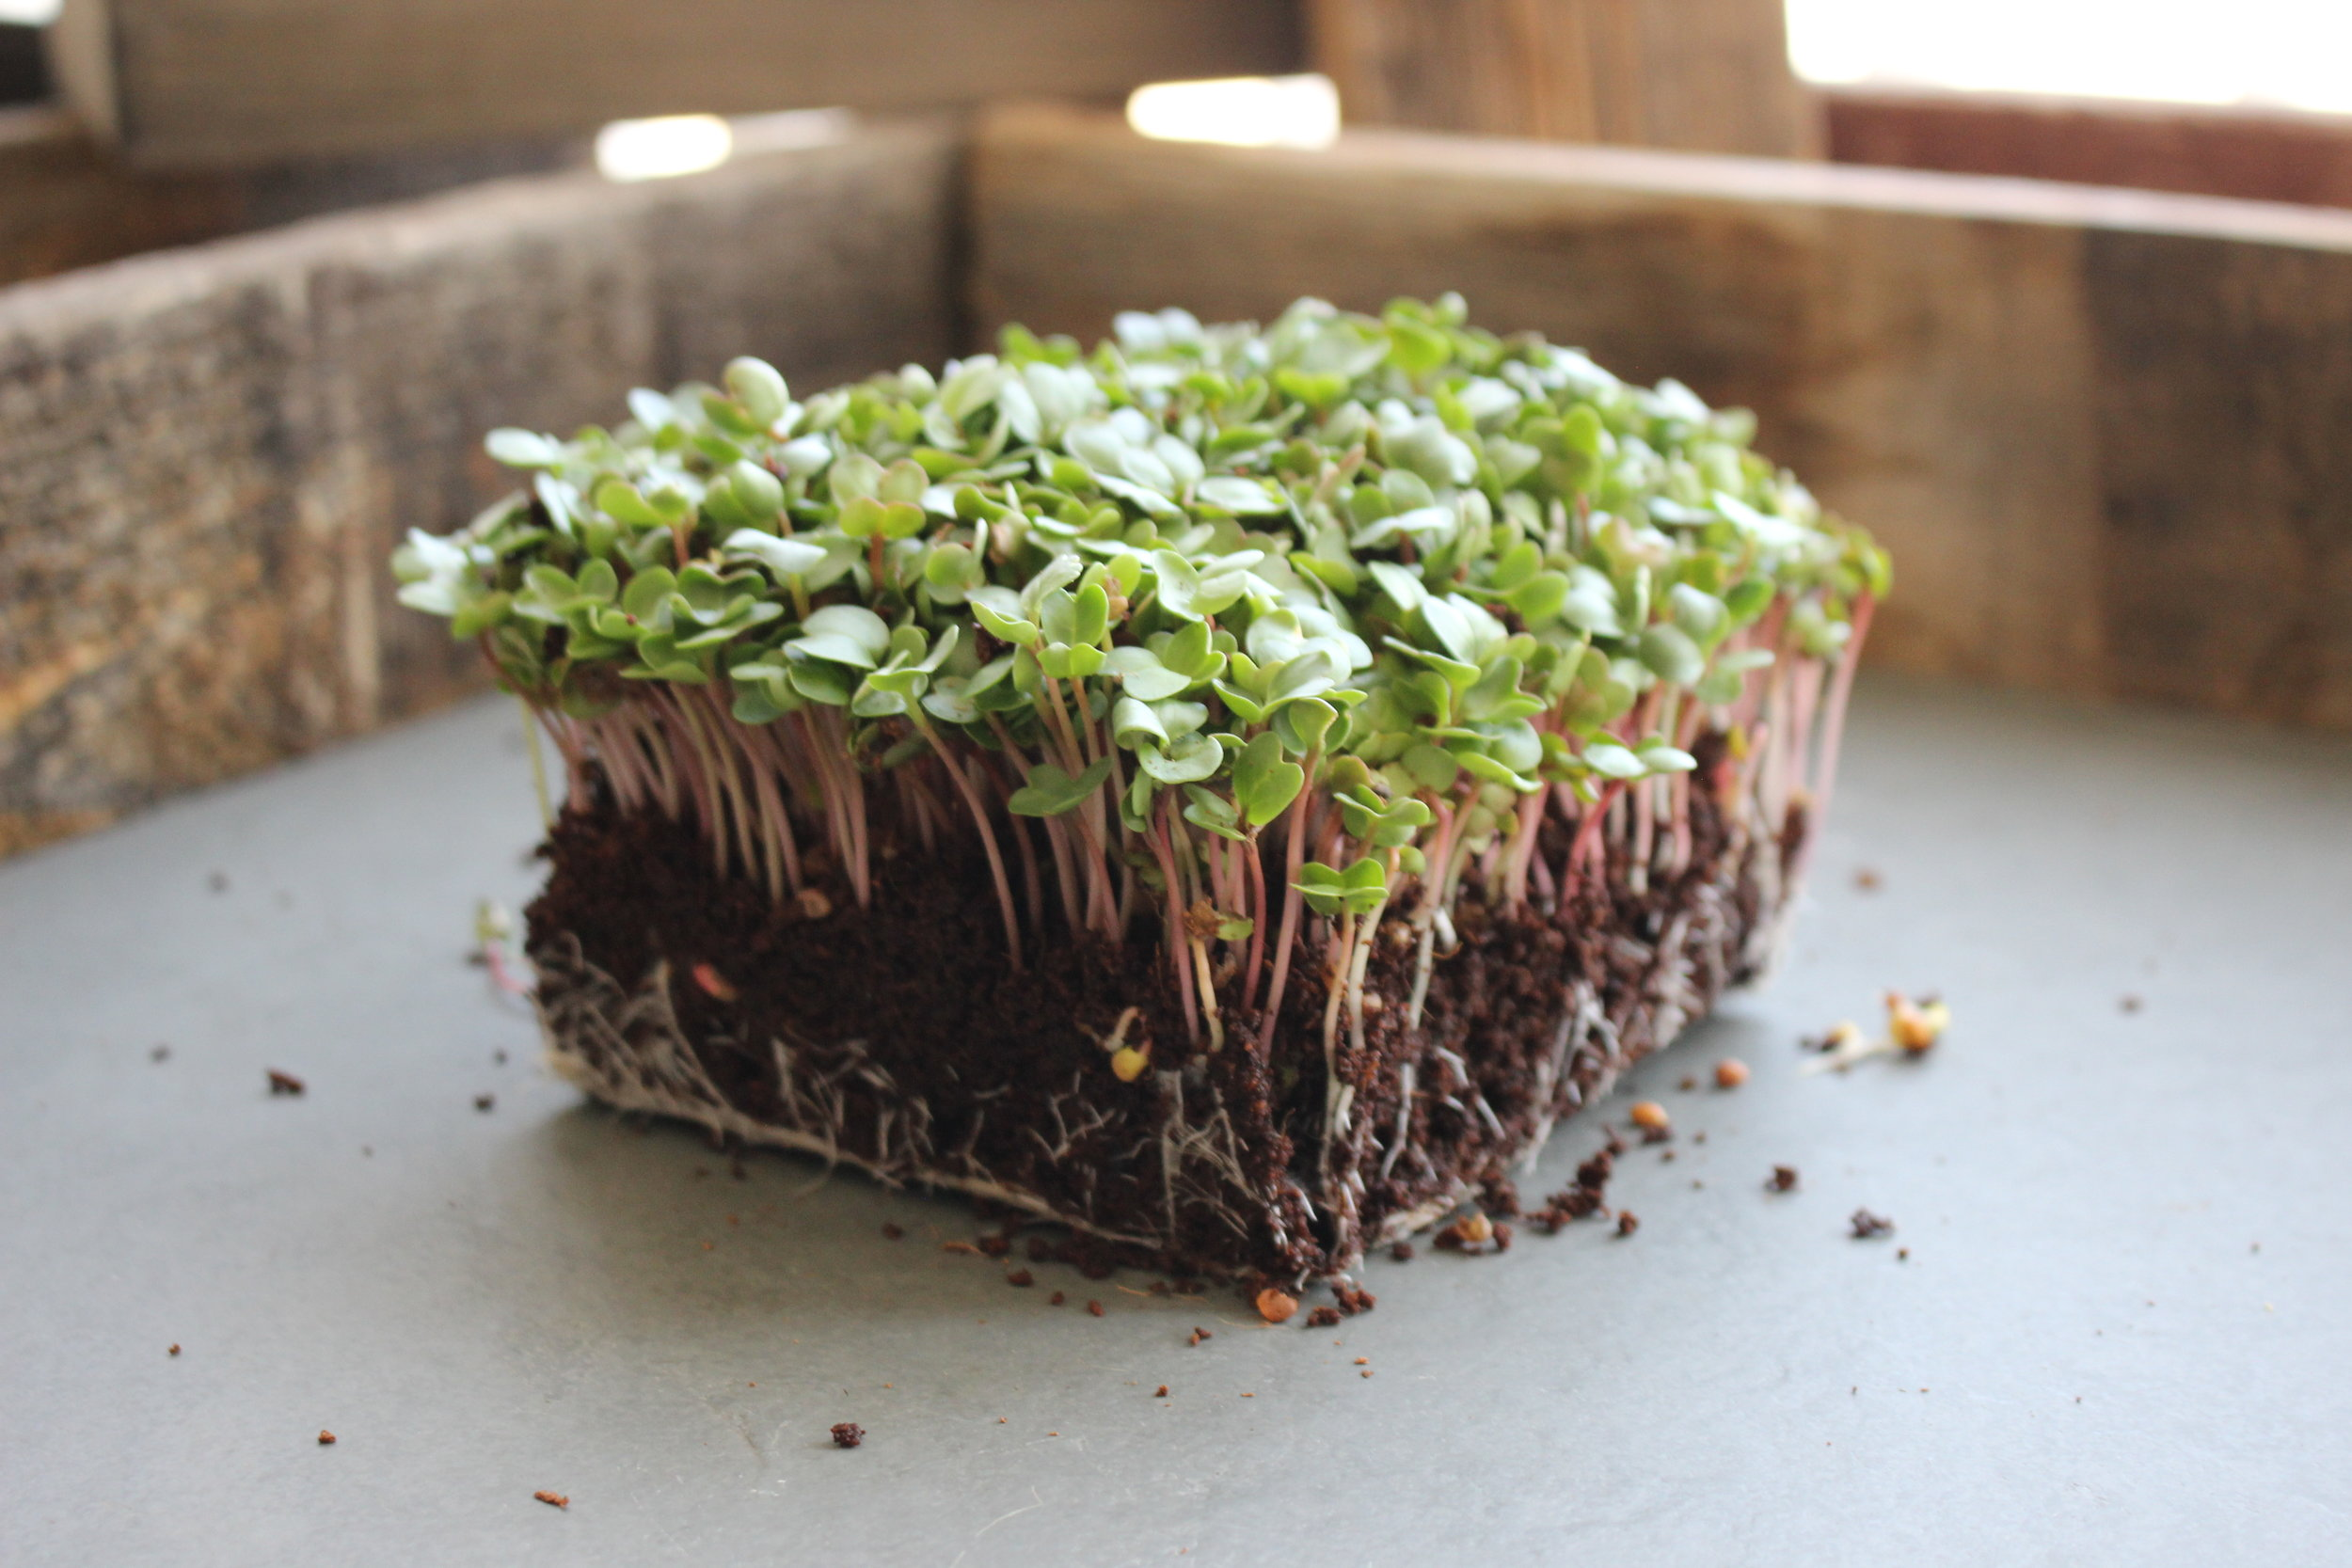 Radish microgreens grow to a harvestable size very quickly. They add a spicy kick to salads and sandwiches.